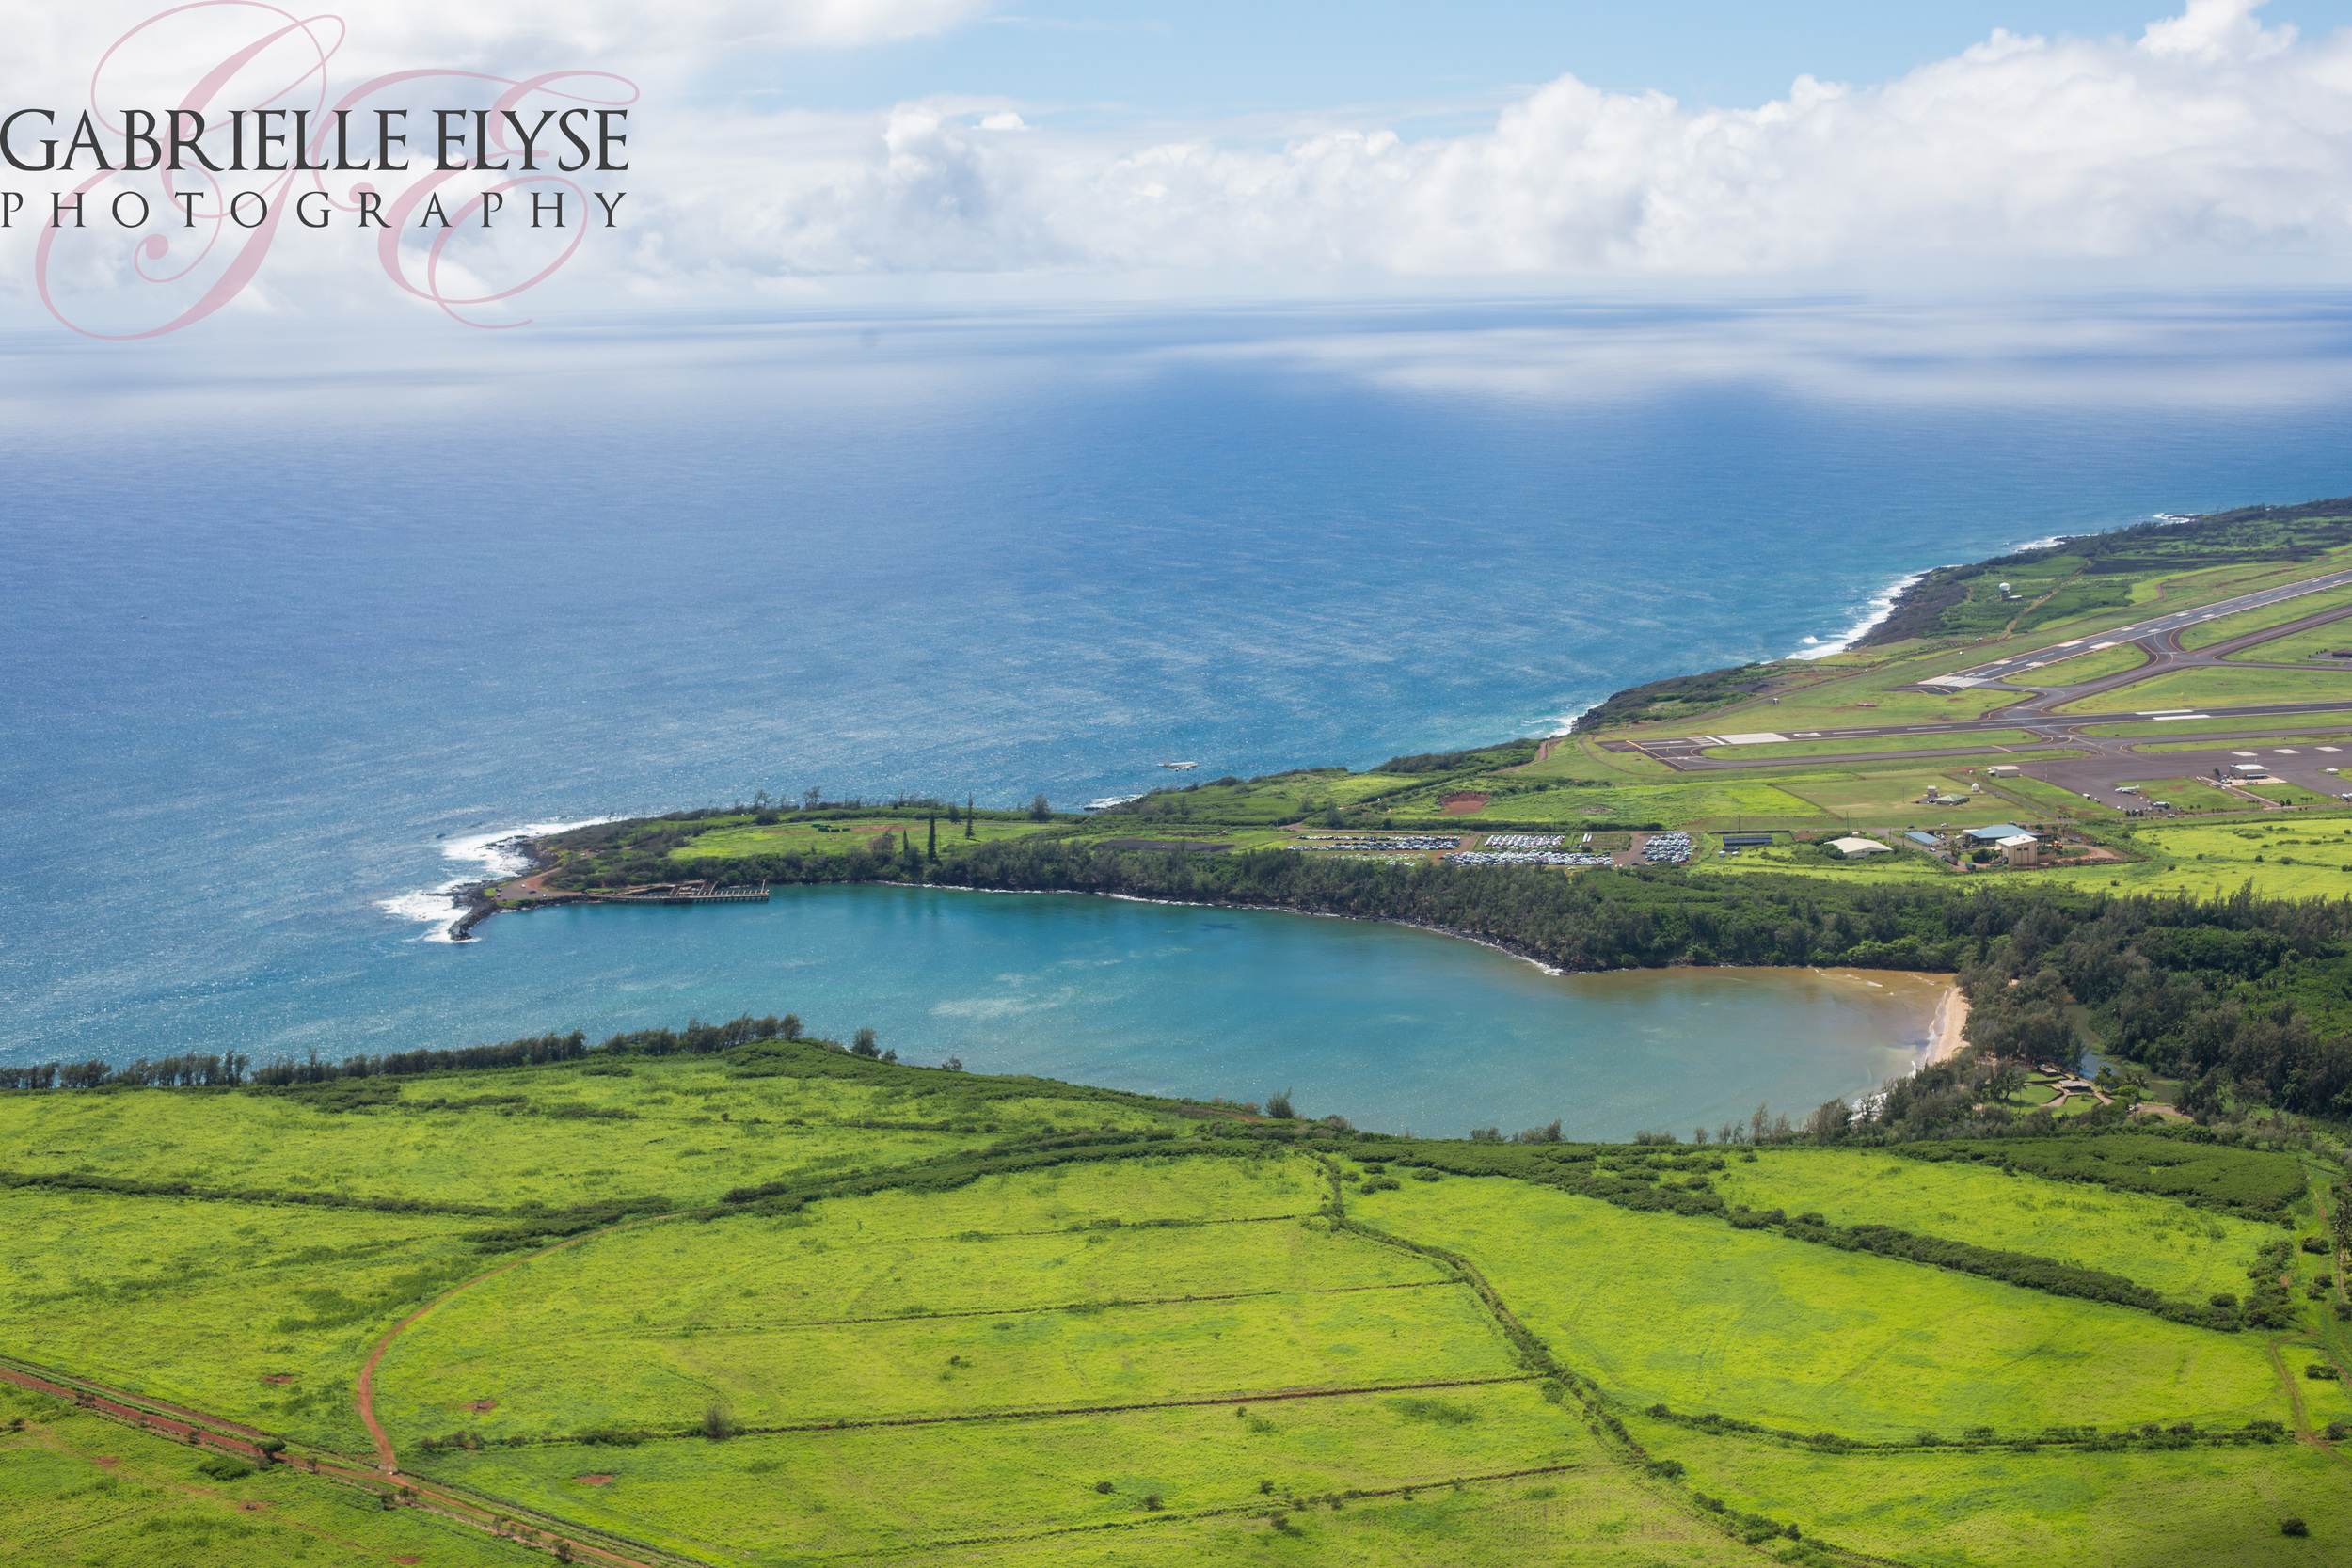 Coming in back to Lihue Airport from the helicopter tour